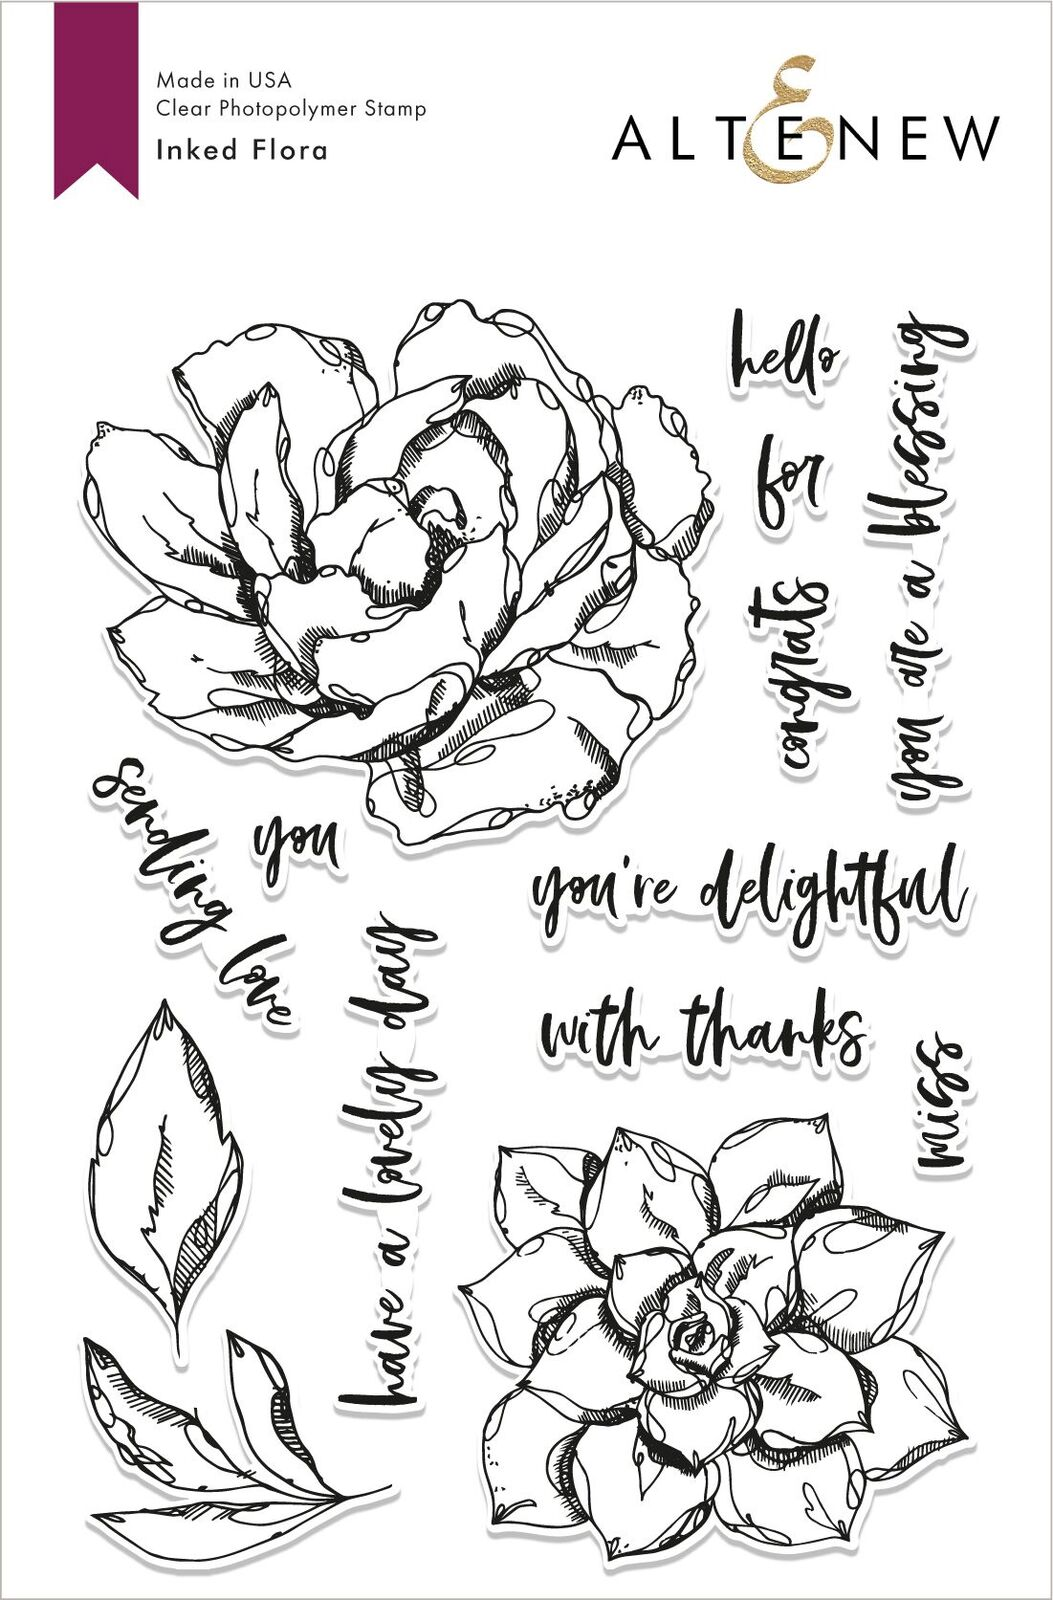 https://altenew.com/products/inked-flora-stamp-set